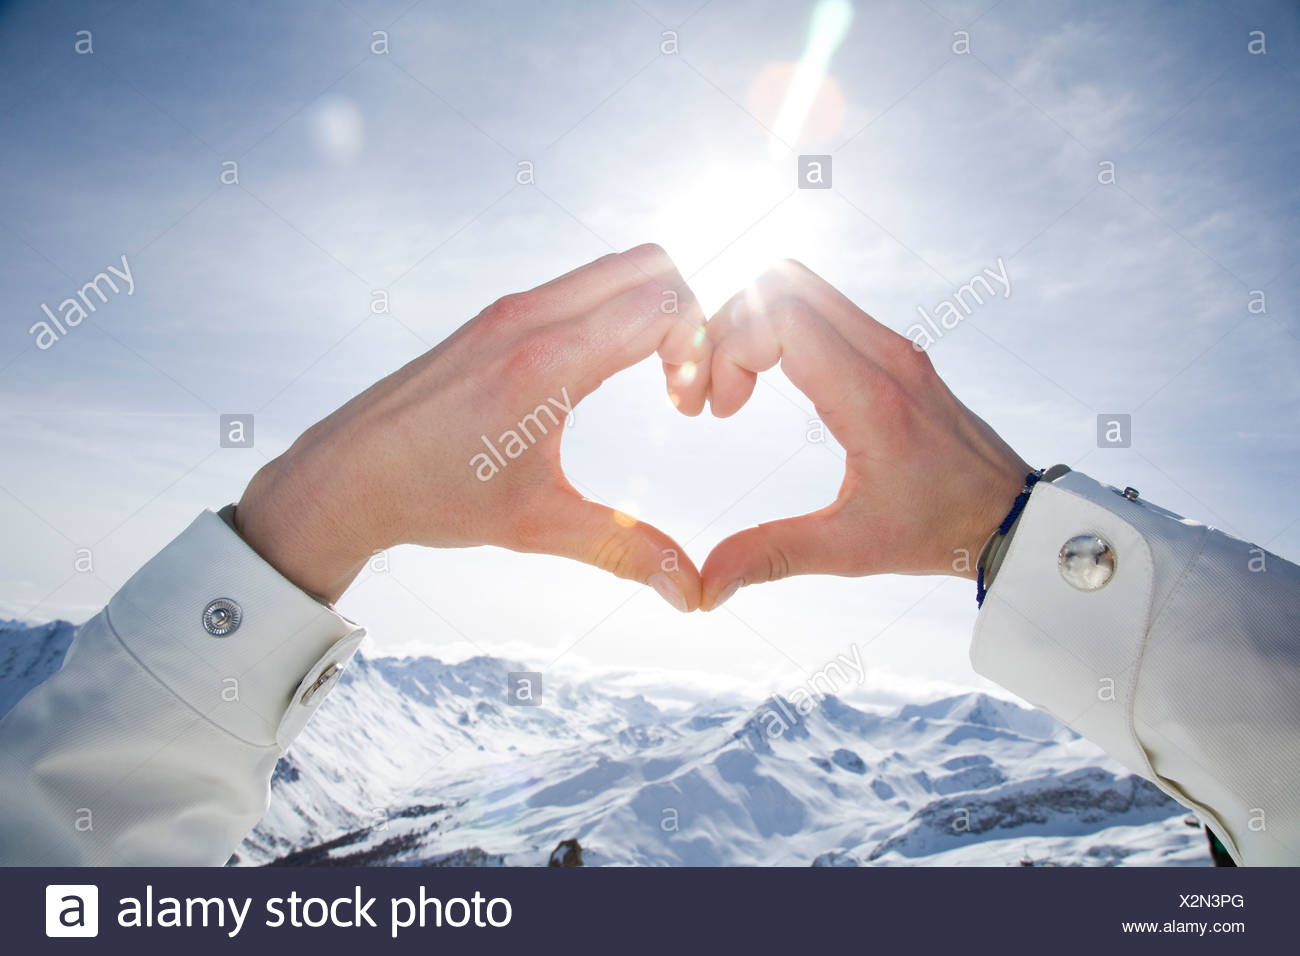 Close-up of woman's hands making heart shape over snow-capped mountains - Stock Image